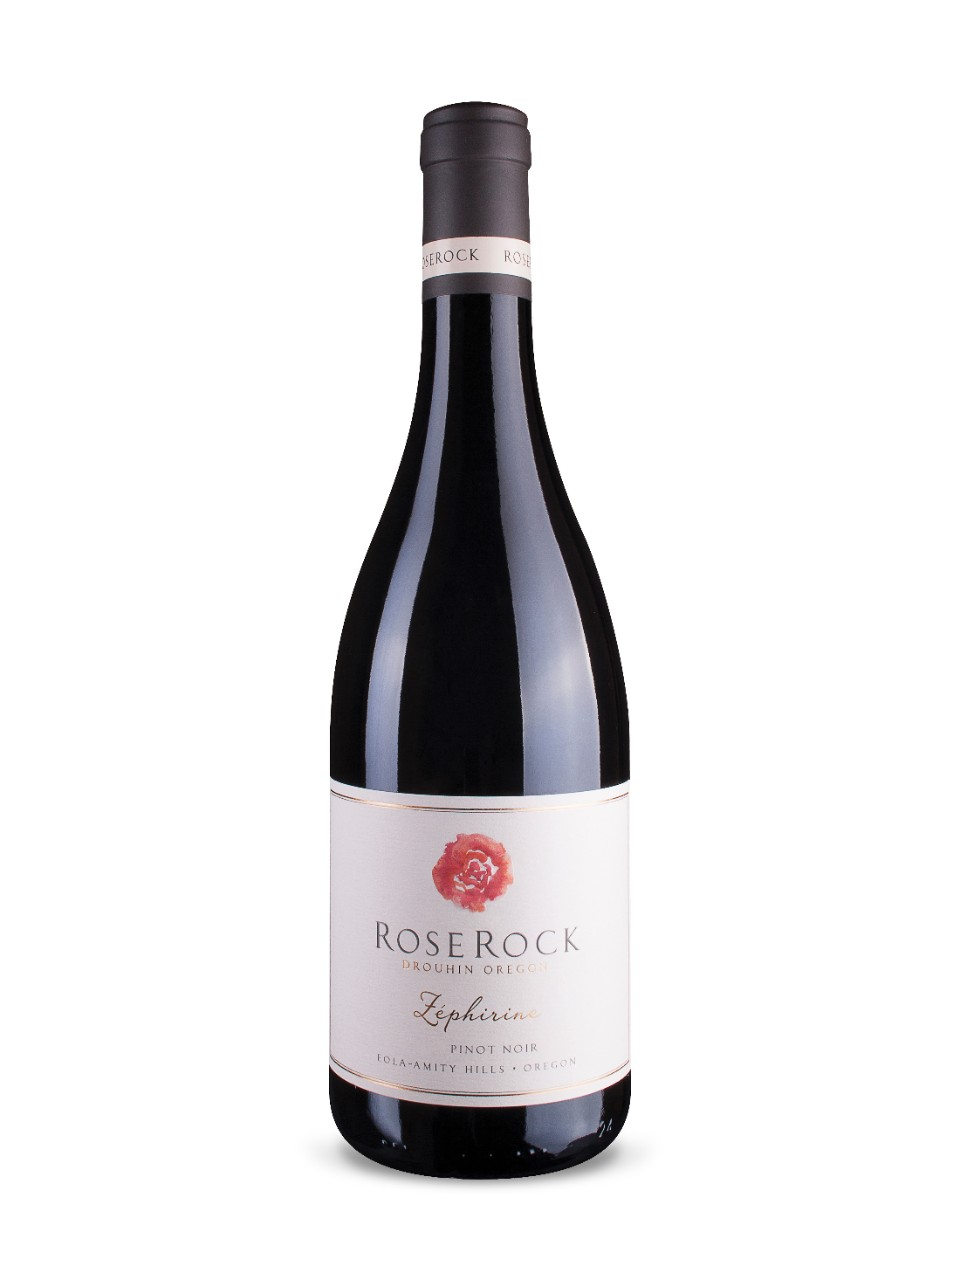 Image for Roserock Zéphirine Pinot Noir 2016 from LCBO